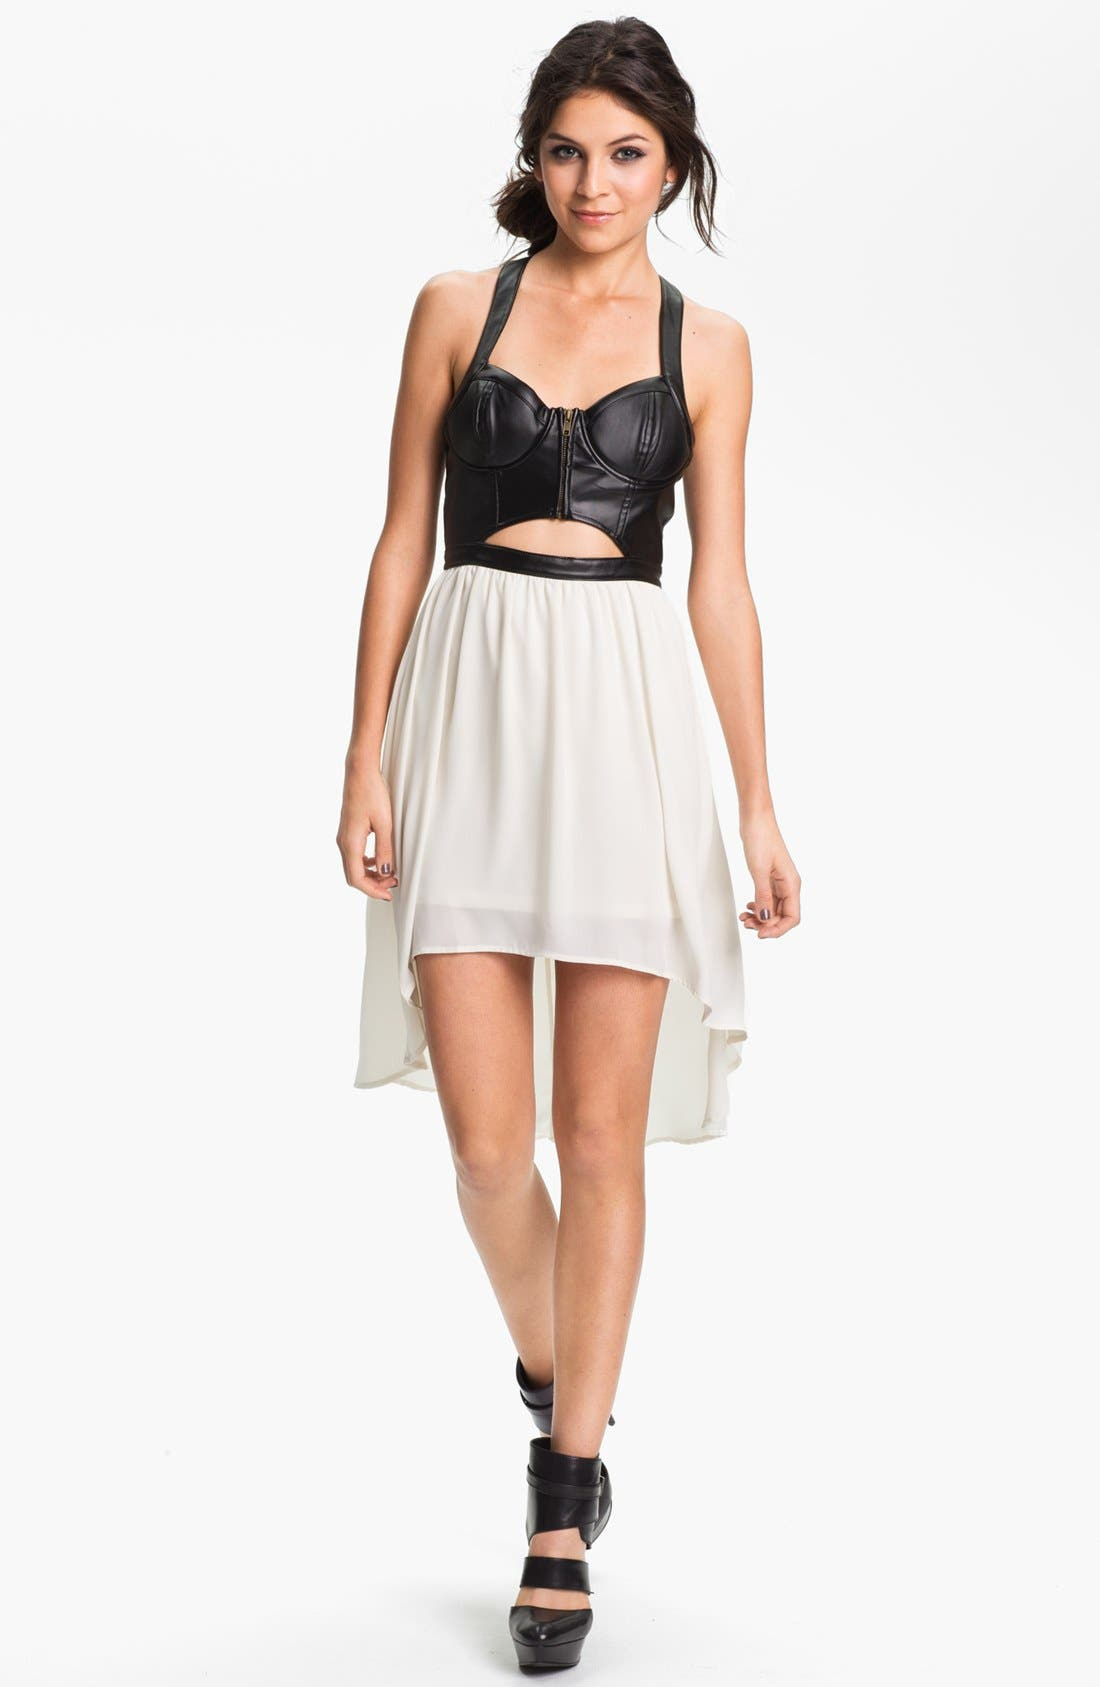 Alternate Image 1 Selected - Clothing Cutout Faux Leather Bustier Dress